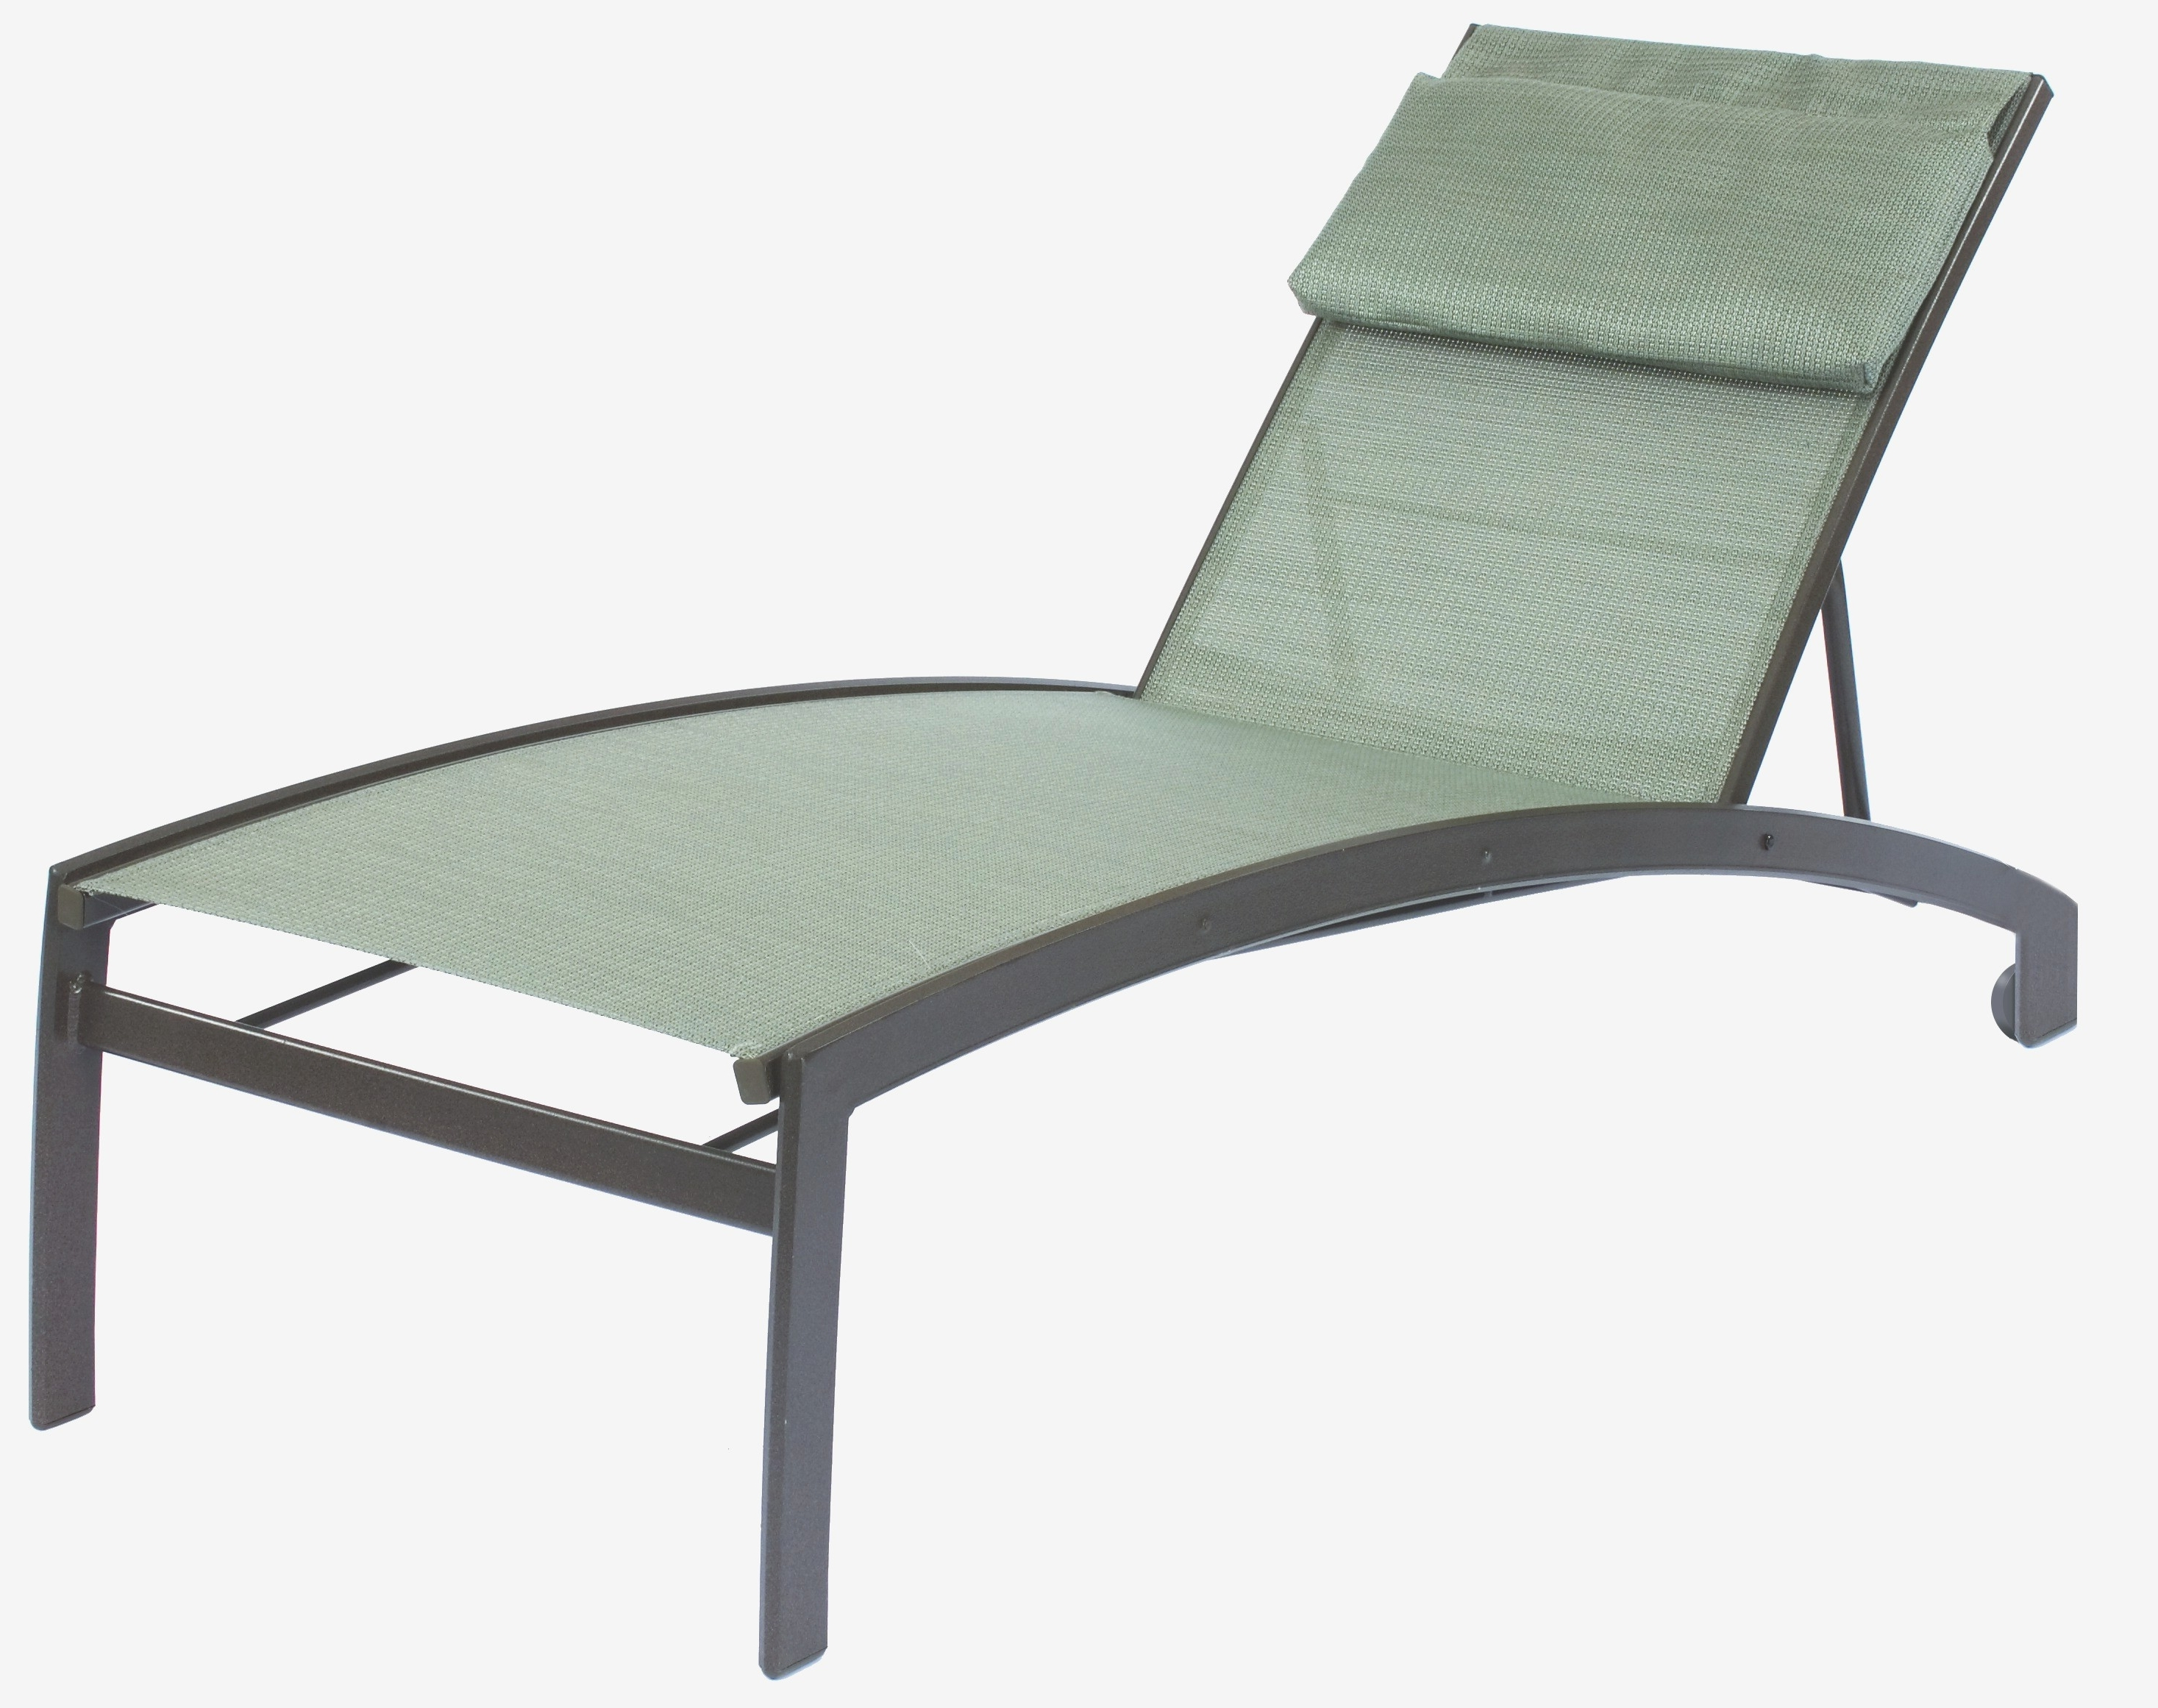 Well Known Suncoast Patio Furniture Luxury Outdoor Chaise Lounge Chairs With With Regard To Luxury Outdoor Chaise Lounge Chairs (View 6 of 15)